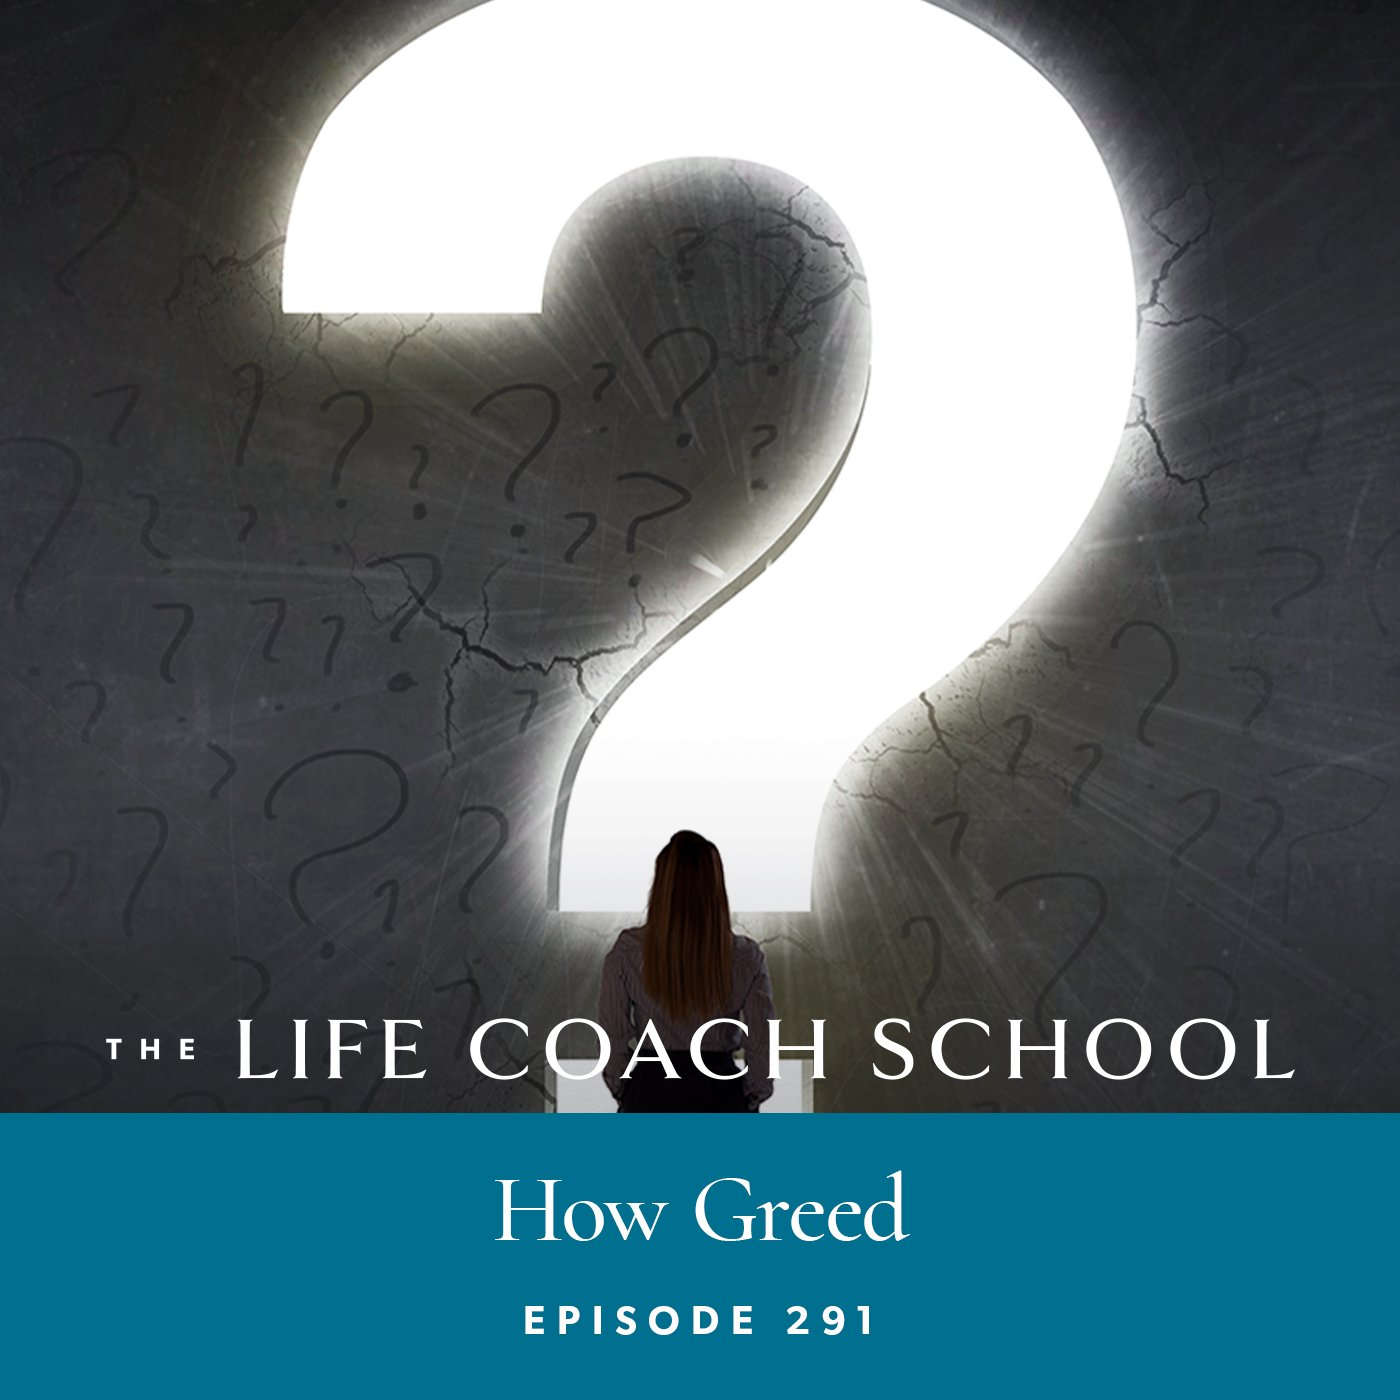 The Life Coach School Podcast with Brooke Castillo | Episode 291 | How Greed